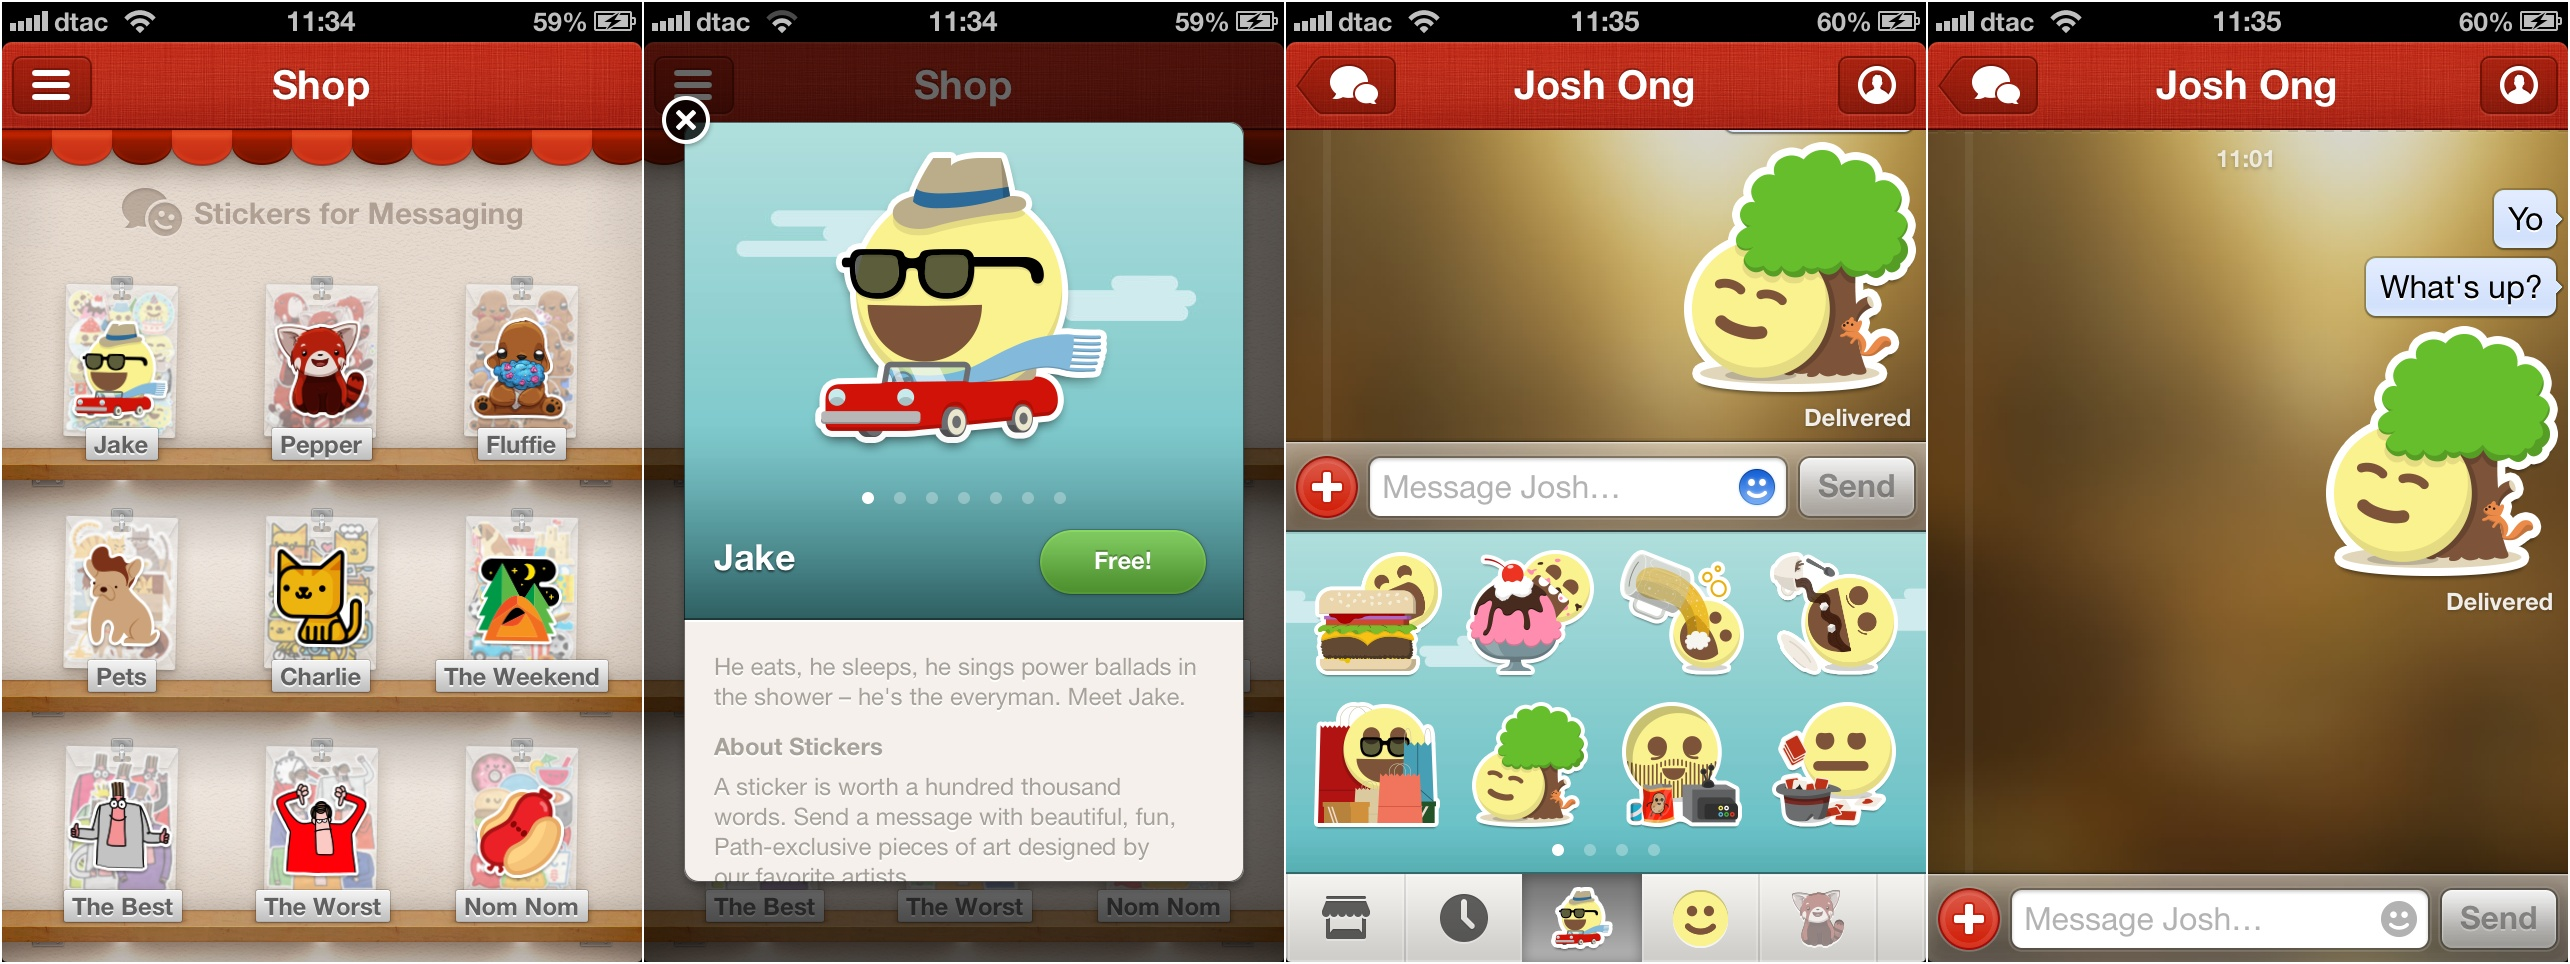 Will The Features Of Path 3.0 Entice New Users?